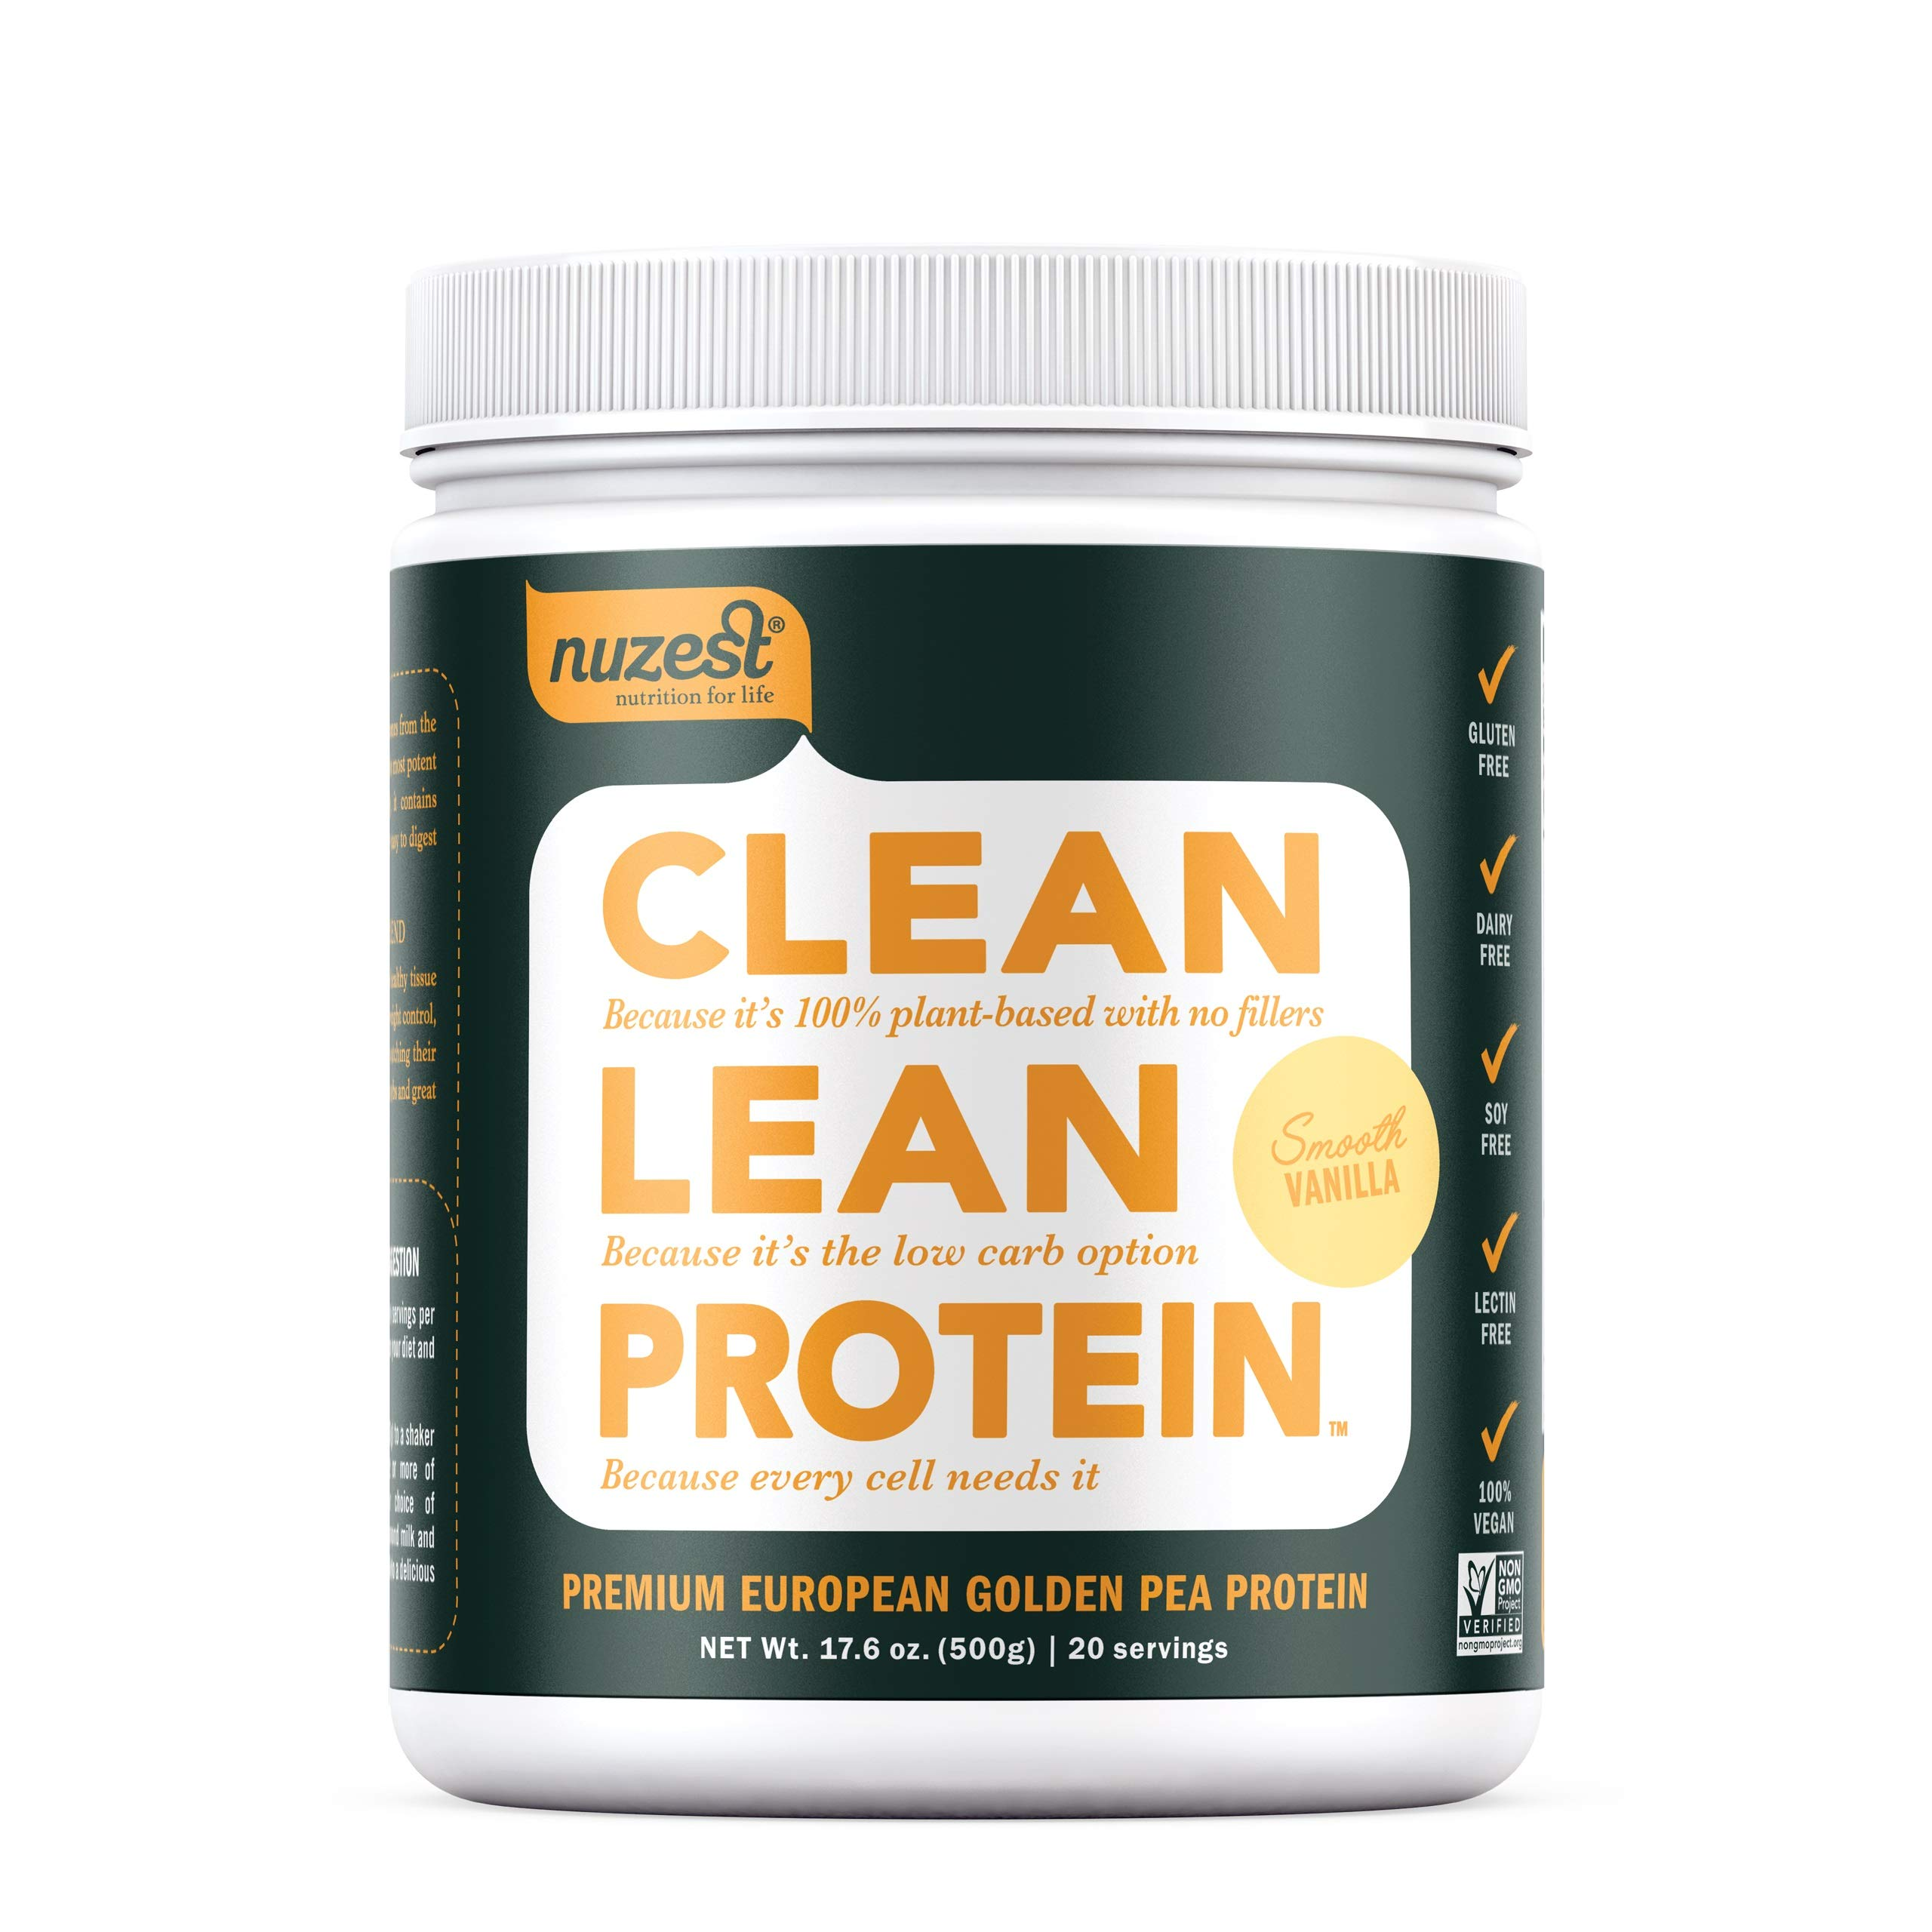 Nuzest Clean Lean Protein - Premium Vegan Protein Powder, Plant Protein Powder, European Golden Pea Protein, Dairy Free, Gluten Free, GMO Free, Naturally Sweetened, Smooth Vanilla, 20 Servings, 1.1 lb by NuZest